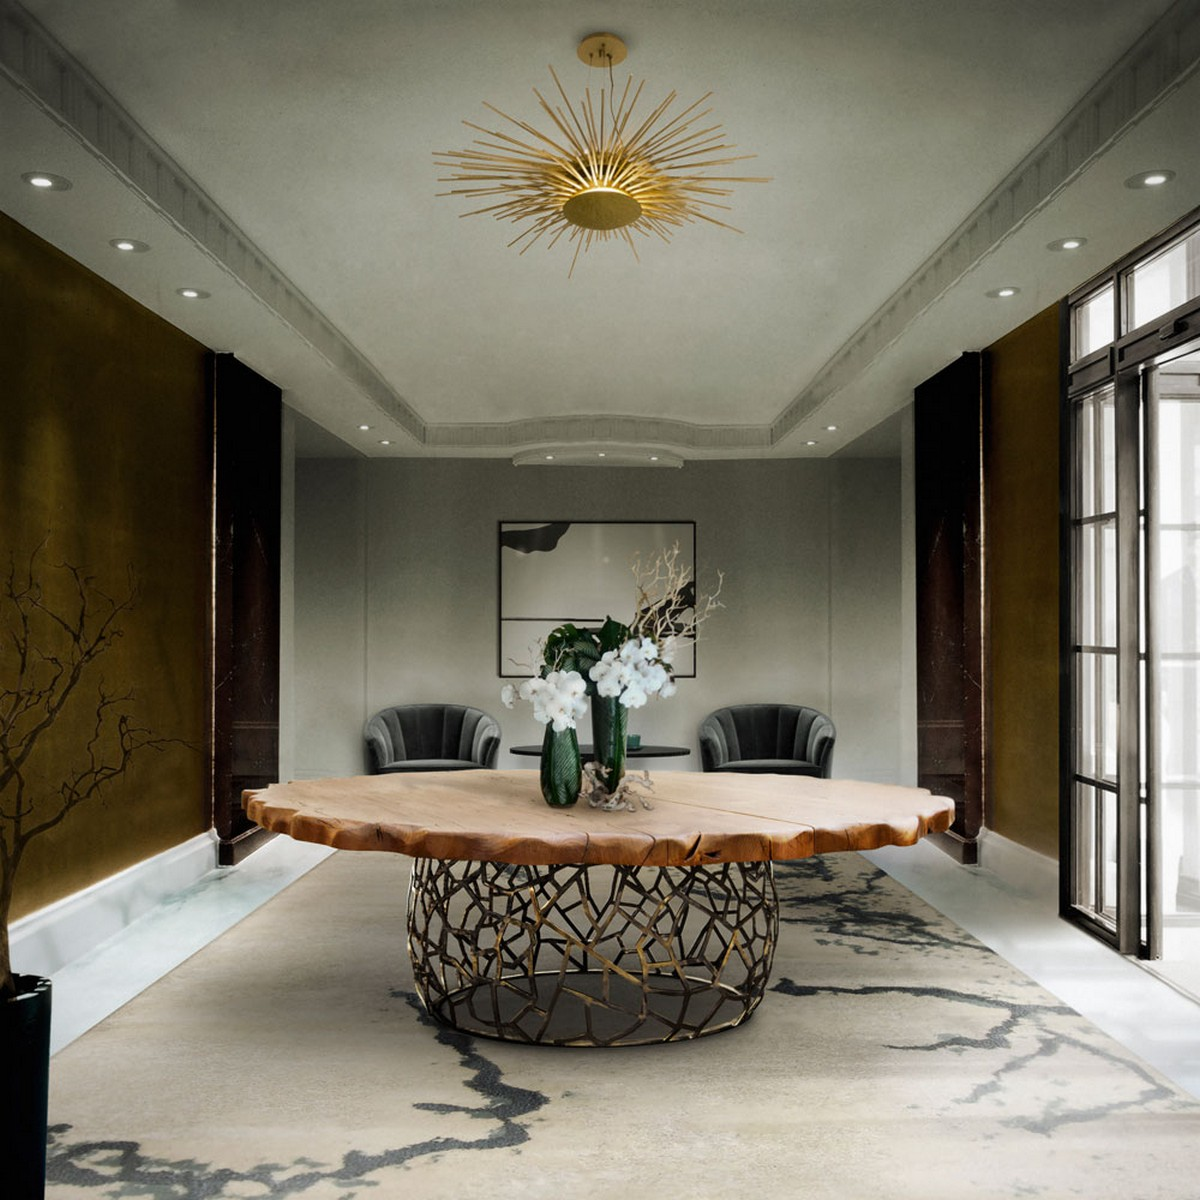 Curated Design: Contemporary Dining Room Ambiances contemporary dining room Curated Design: Contemporary Dining Room Ambiances 5 4